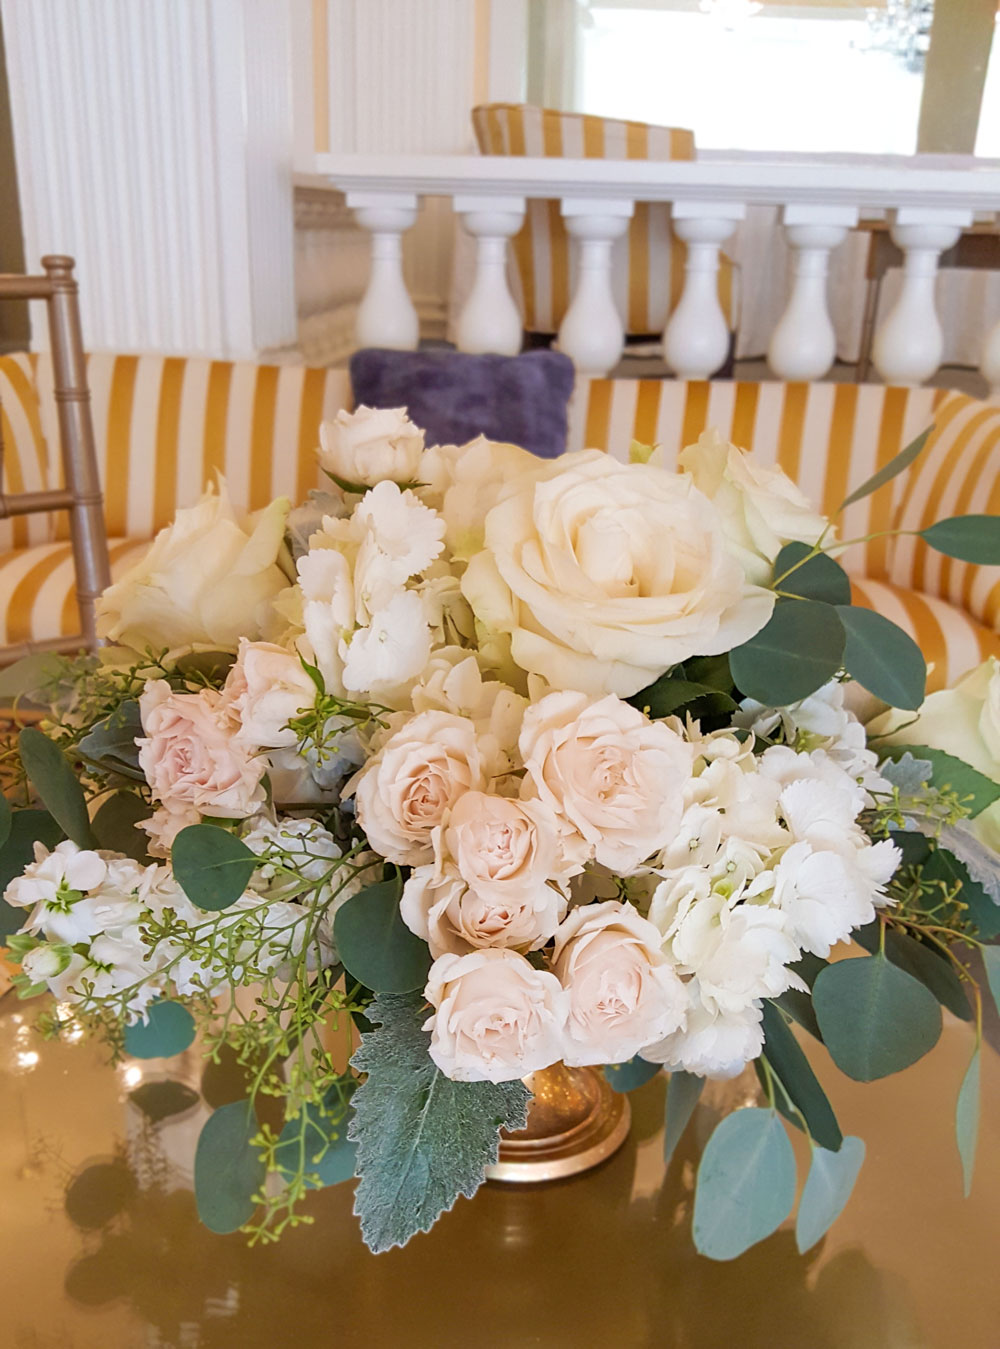 Soft Blush Cream Centerpiece - roses, hydrangea, majolkia rose sprays